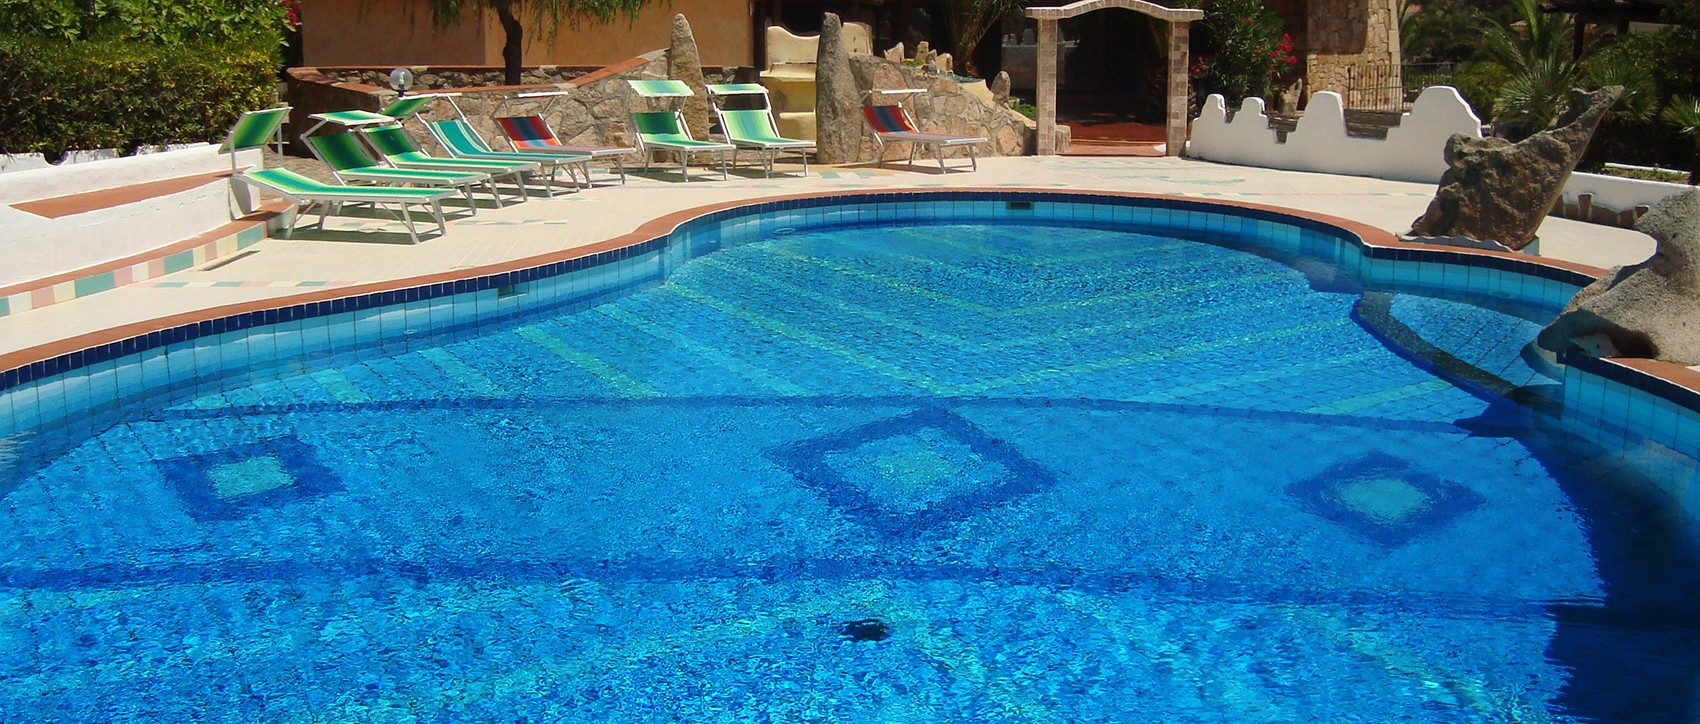 Ion pool care top home information - Swimming pool ionizer ...